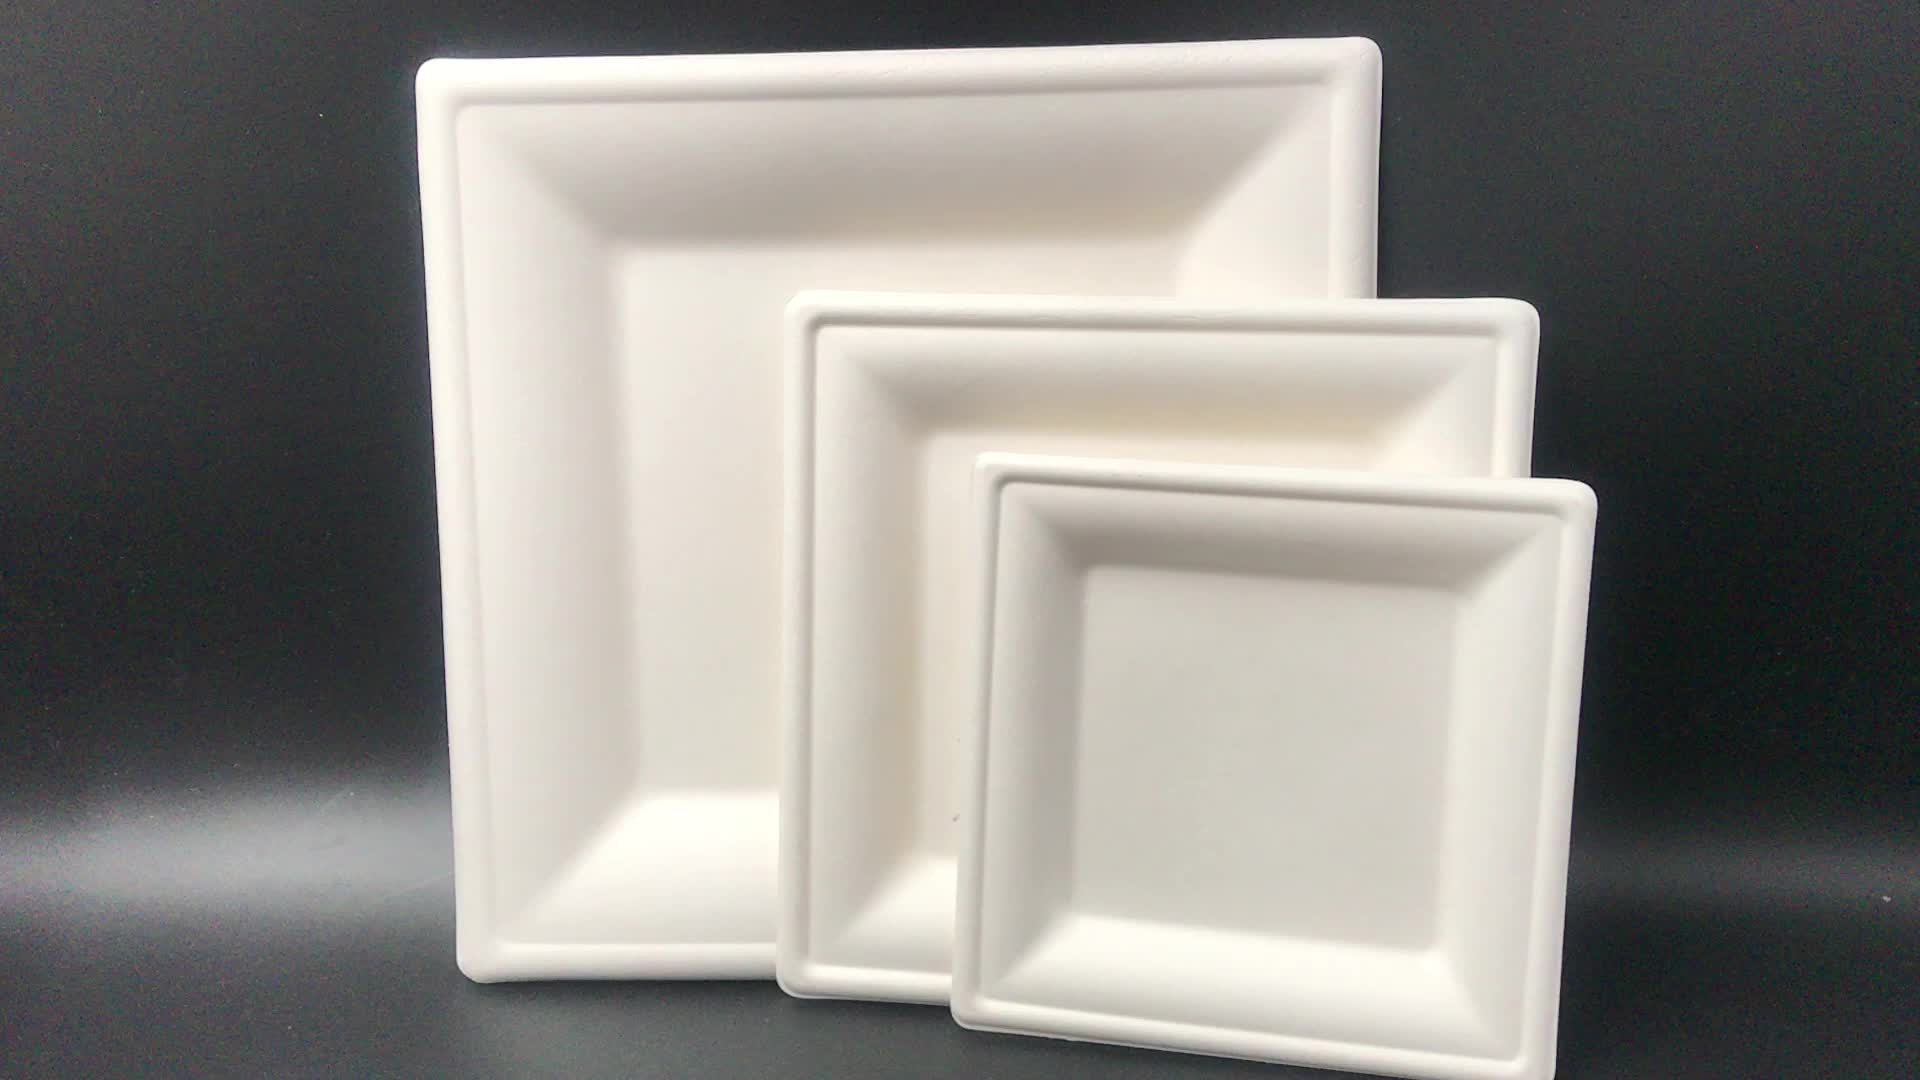 2020 new trends sugarcane plant-based dinner plate disposable biodegradable 8 inch bagasse square plate for weddings